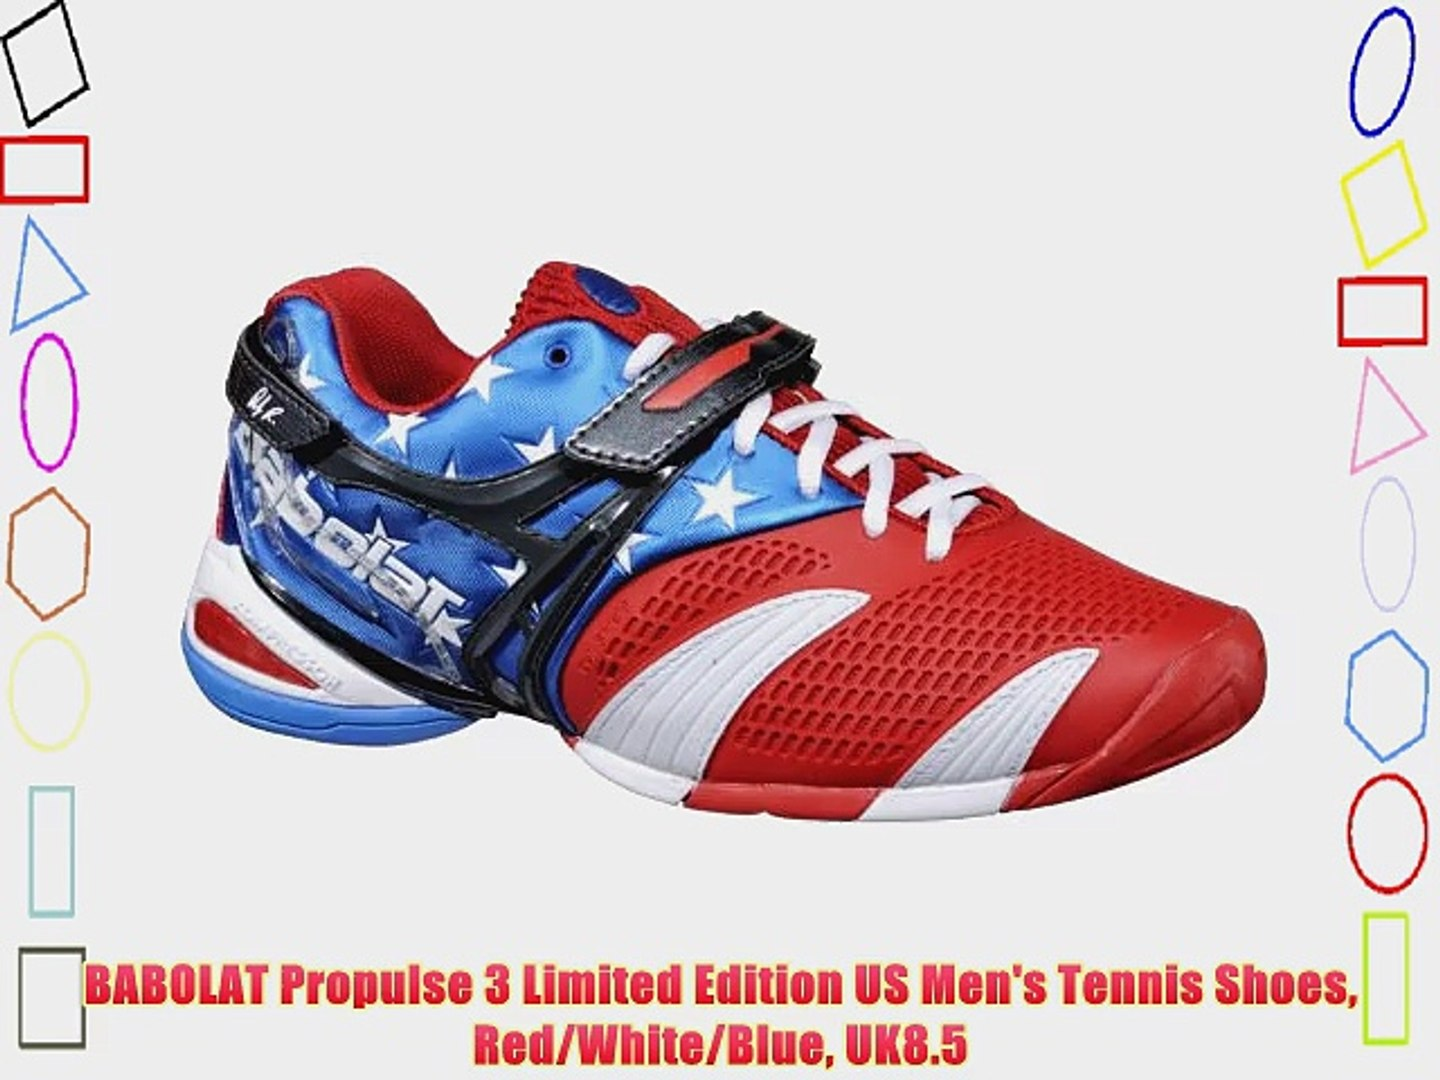 BABOLAT Propulse 3 Limited Edition US Men's Tennis Shoes Red/White/Blue UK8.5